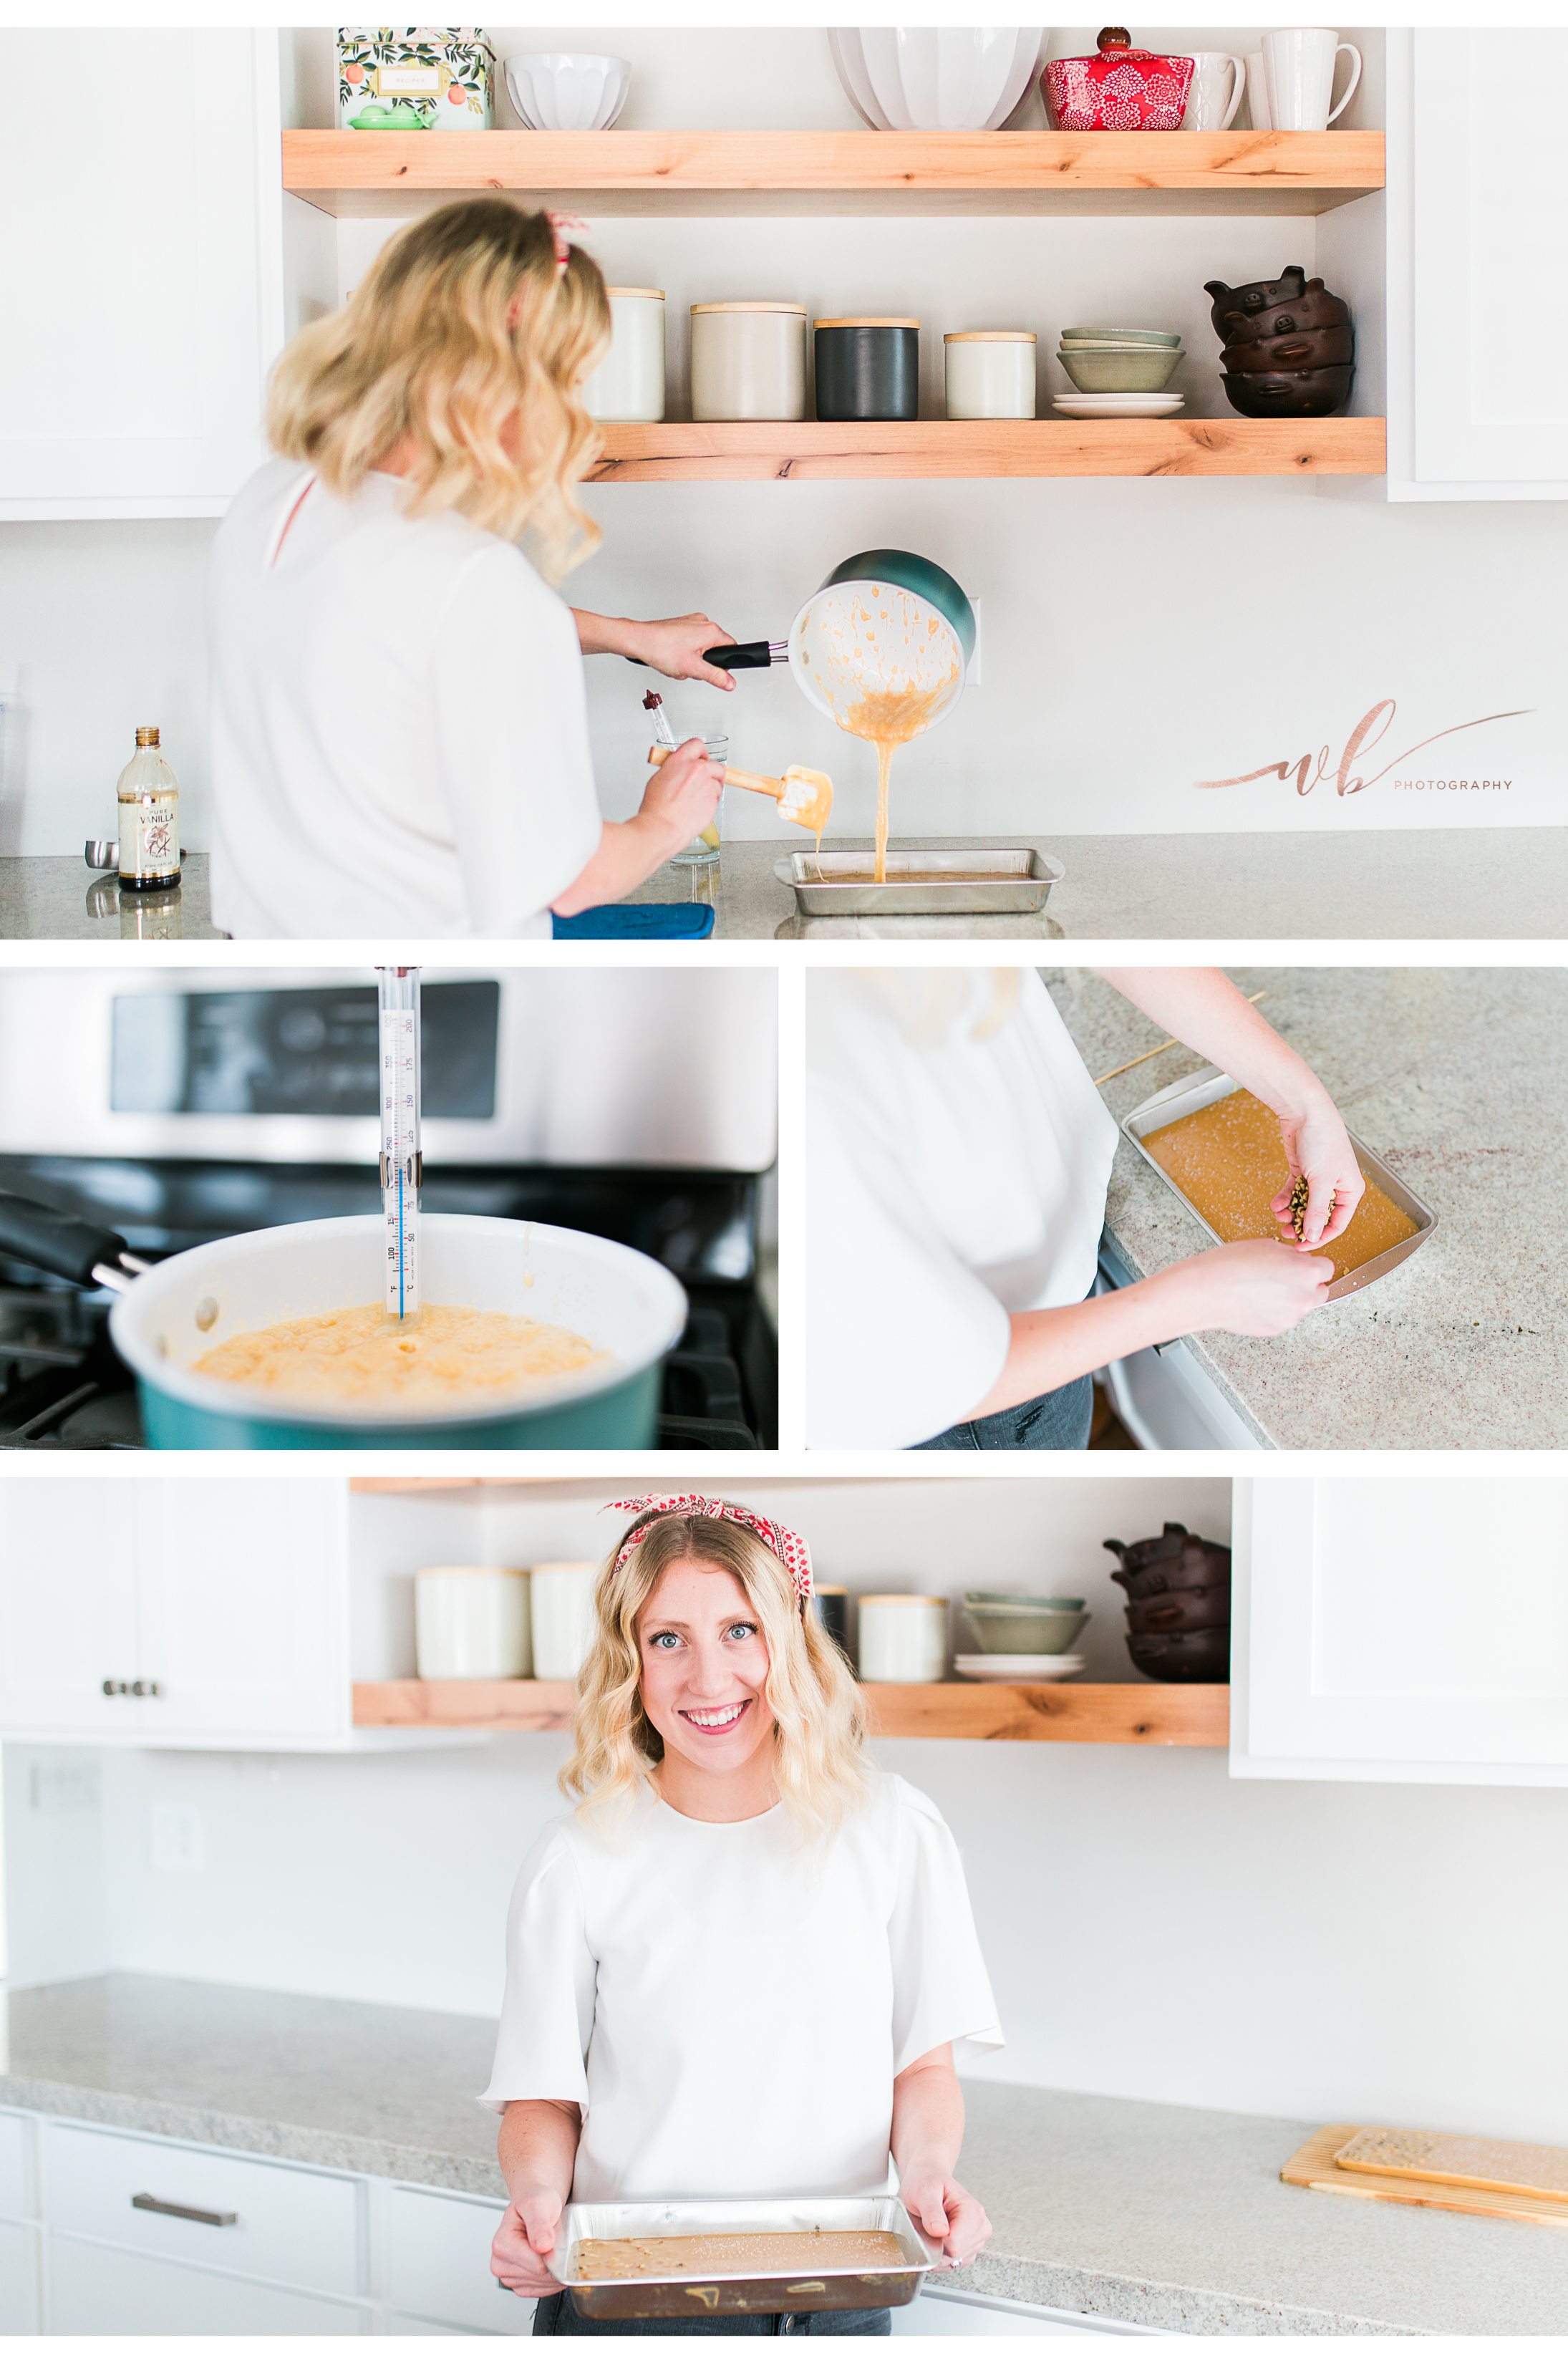 baking photo shoot